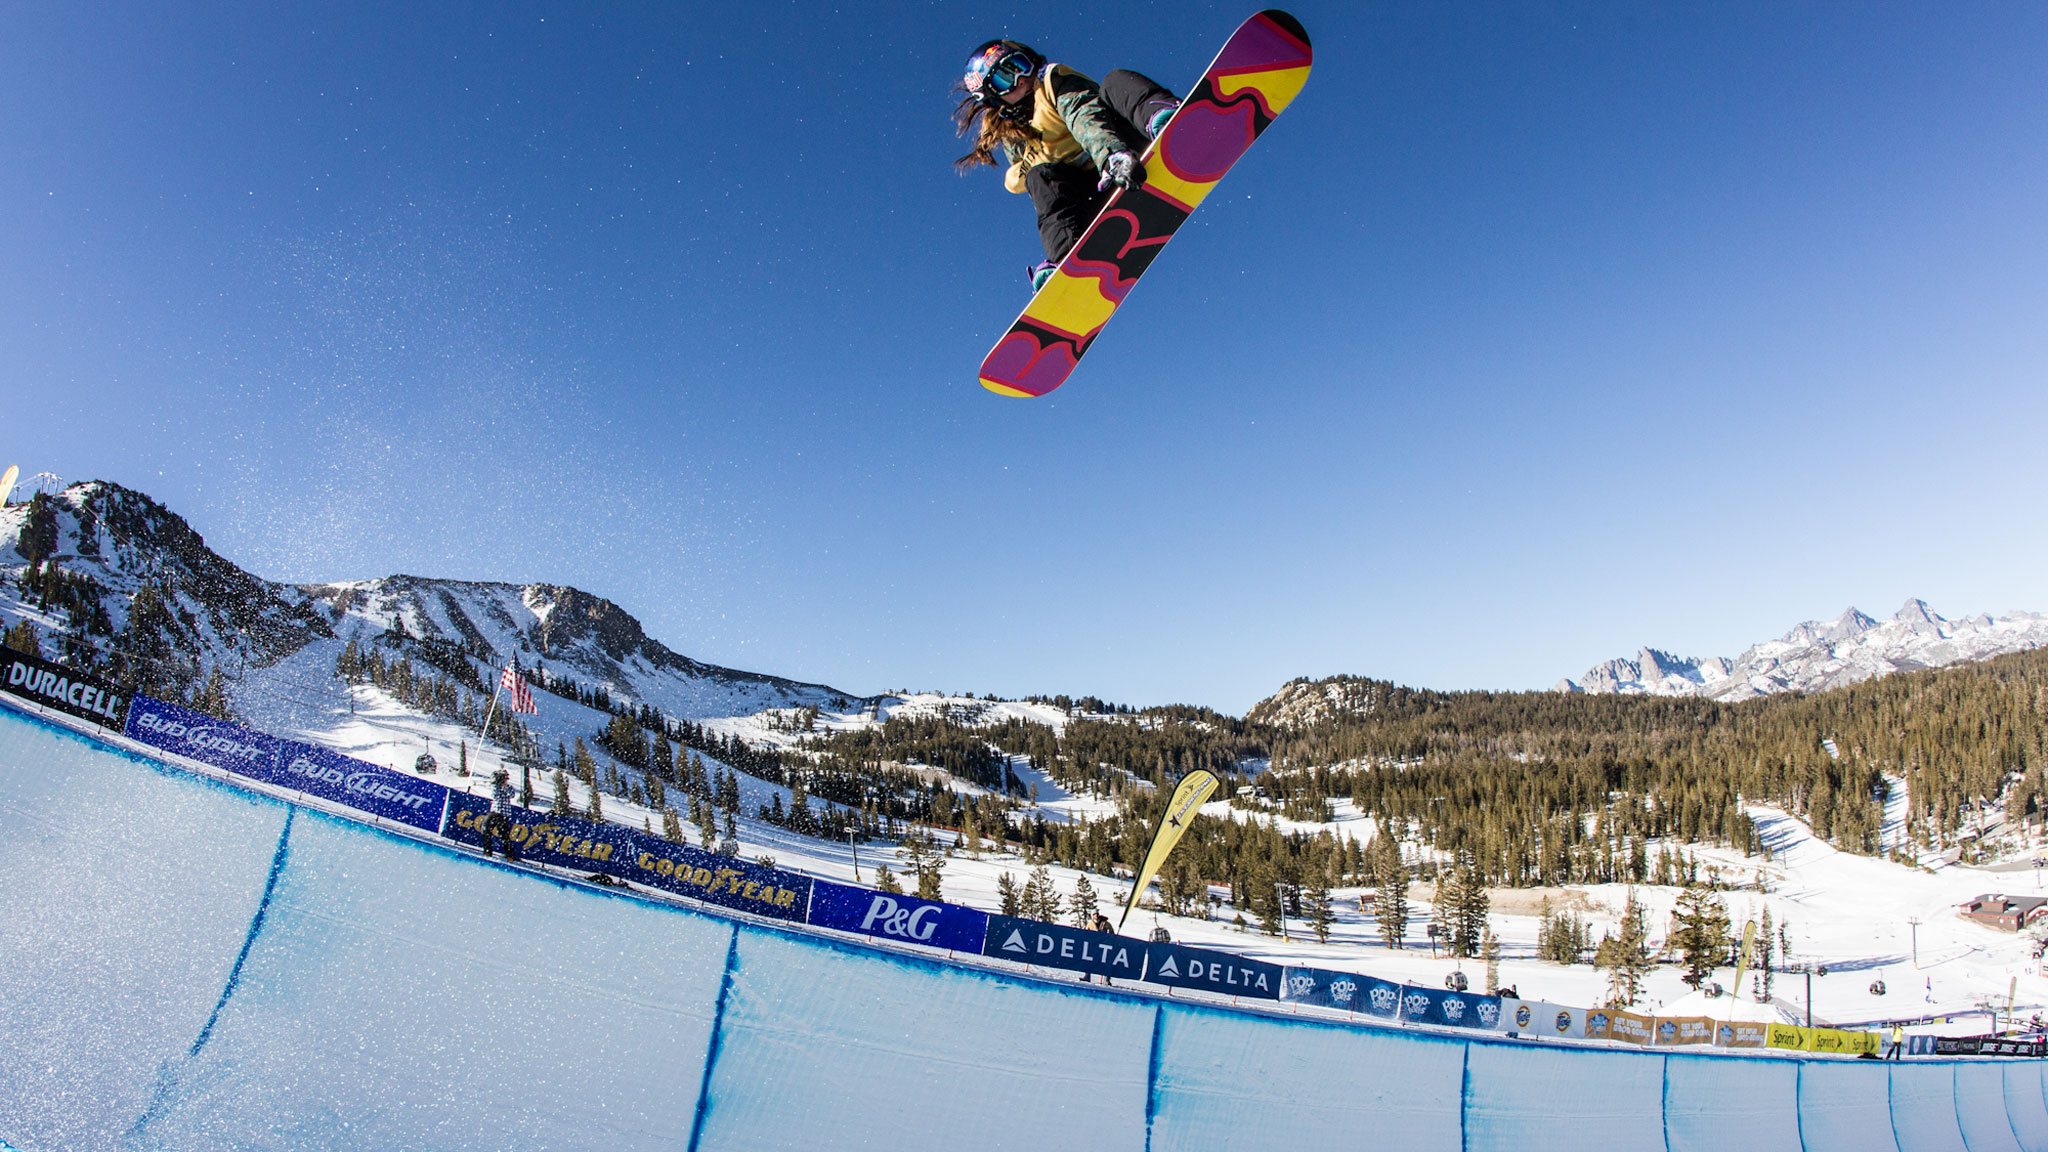 Arielle Gold, Halfpipe